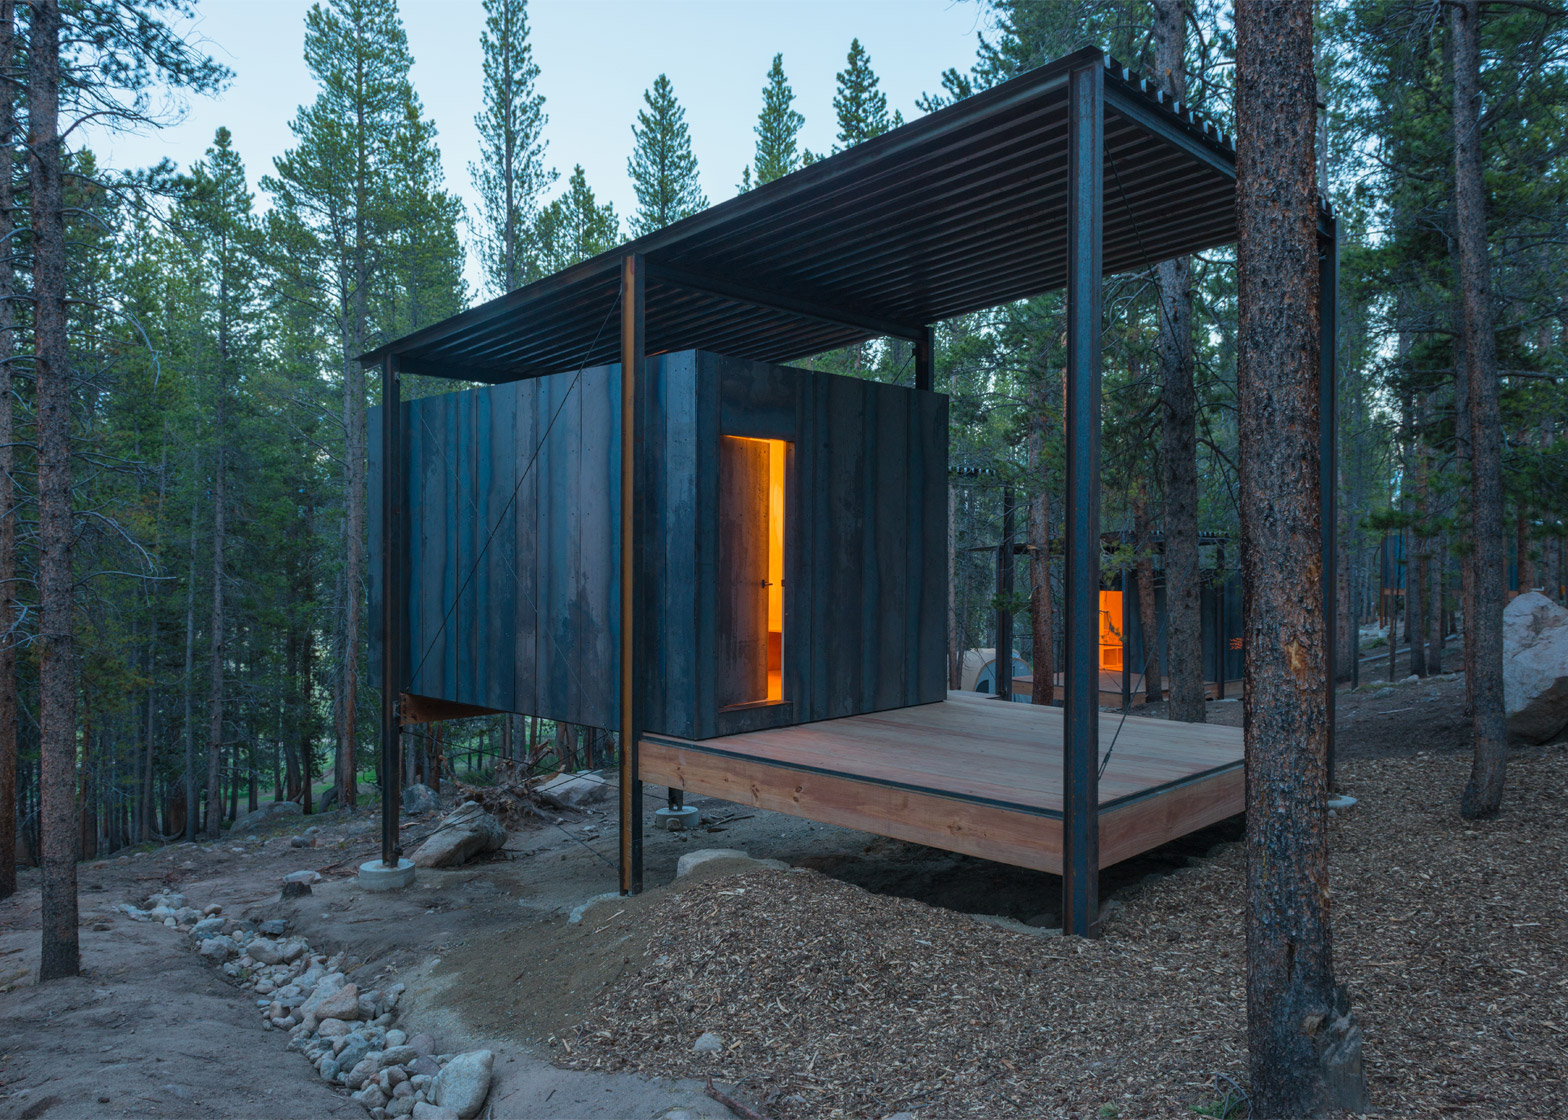 Rustic cabins for colorado 39 s outward bound students for Building a house in colorado